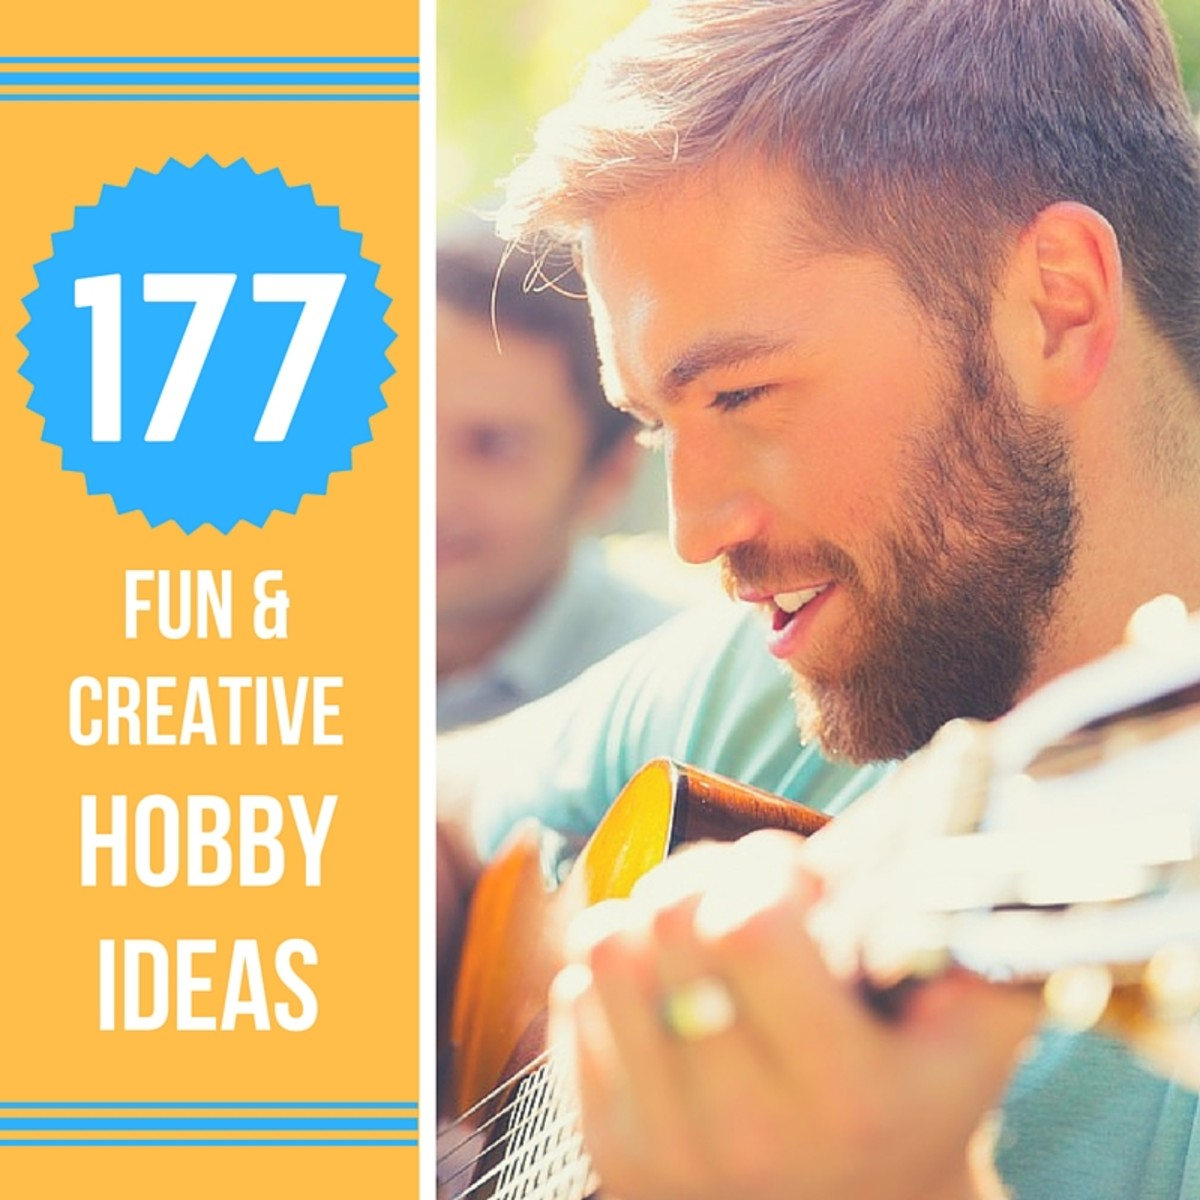 177 Fun & Creative Hobby Ideas